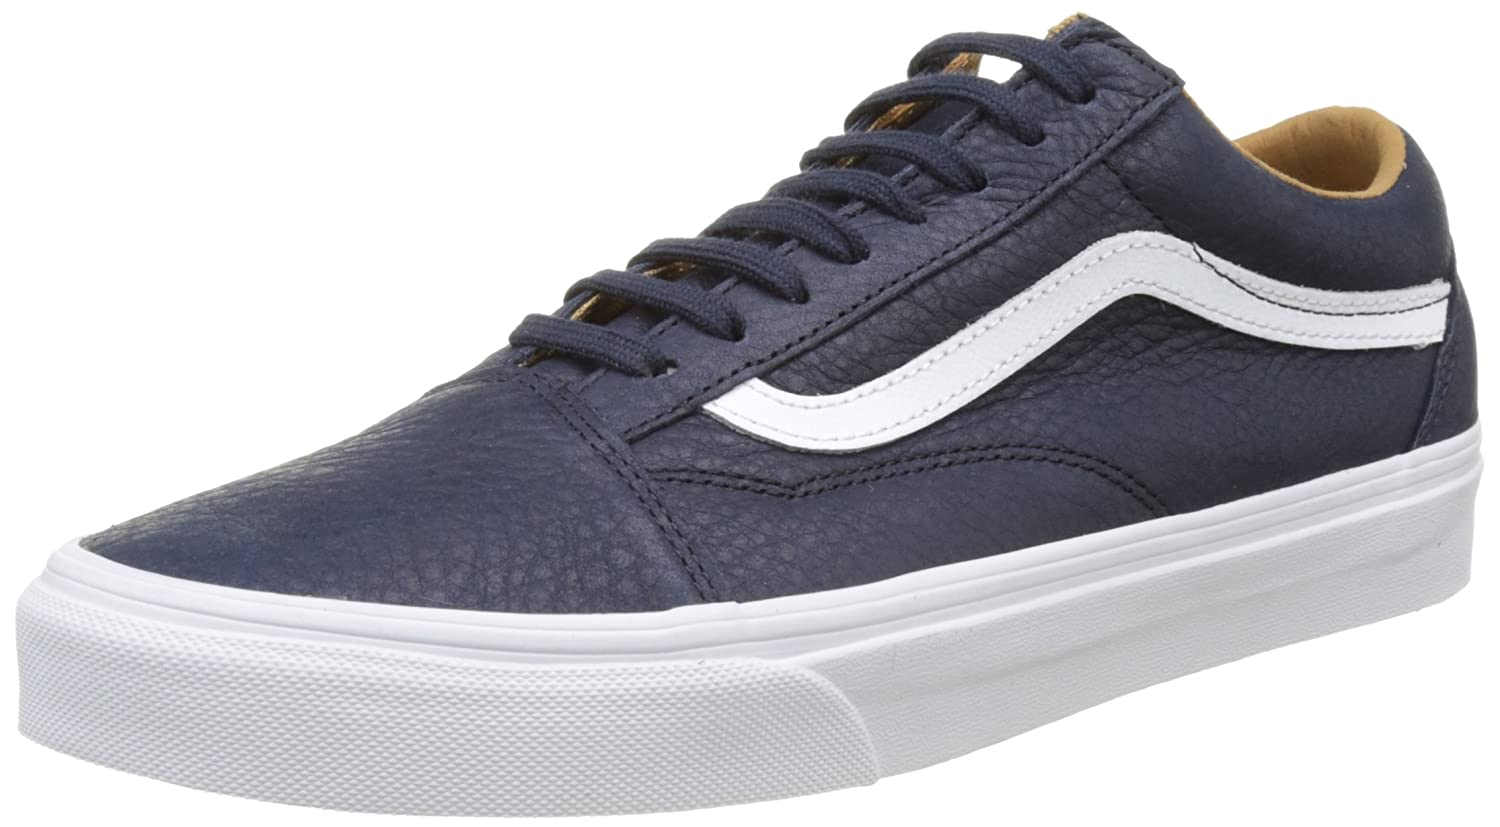 93646fbecea9a8 Vans Men s Ua Old Skool Low-Top Sneakers  Amazon.co.uk  Shoes   Bags